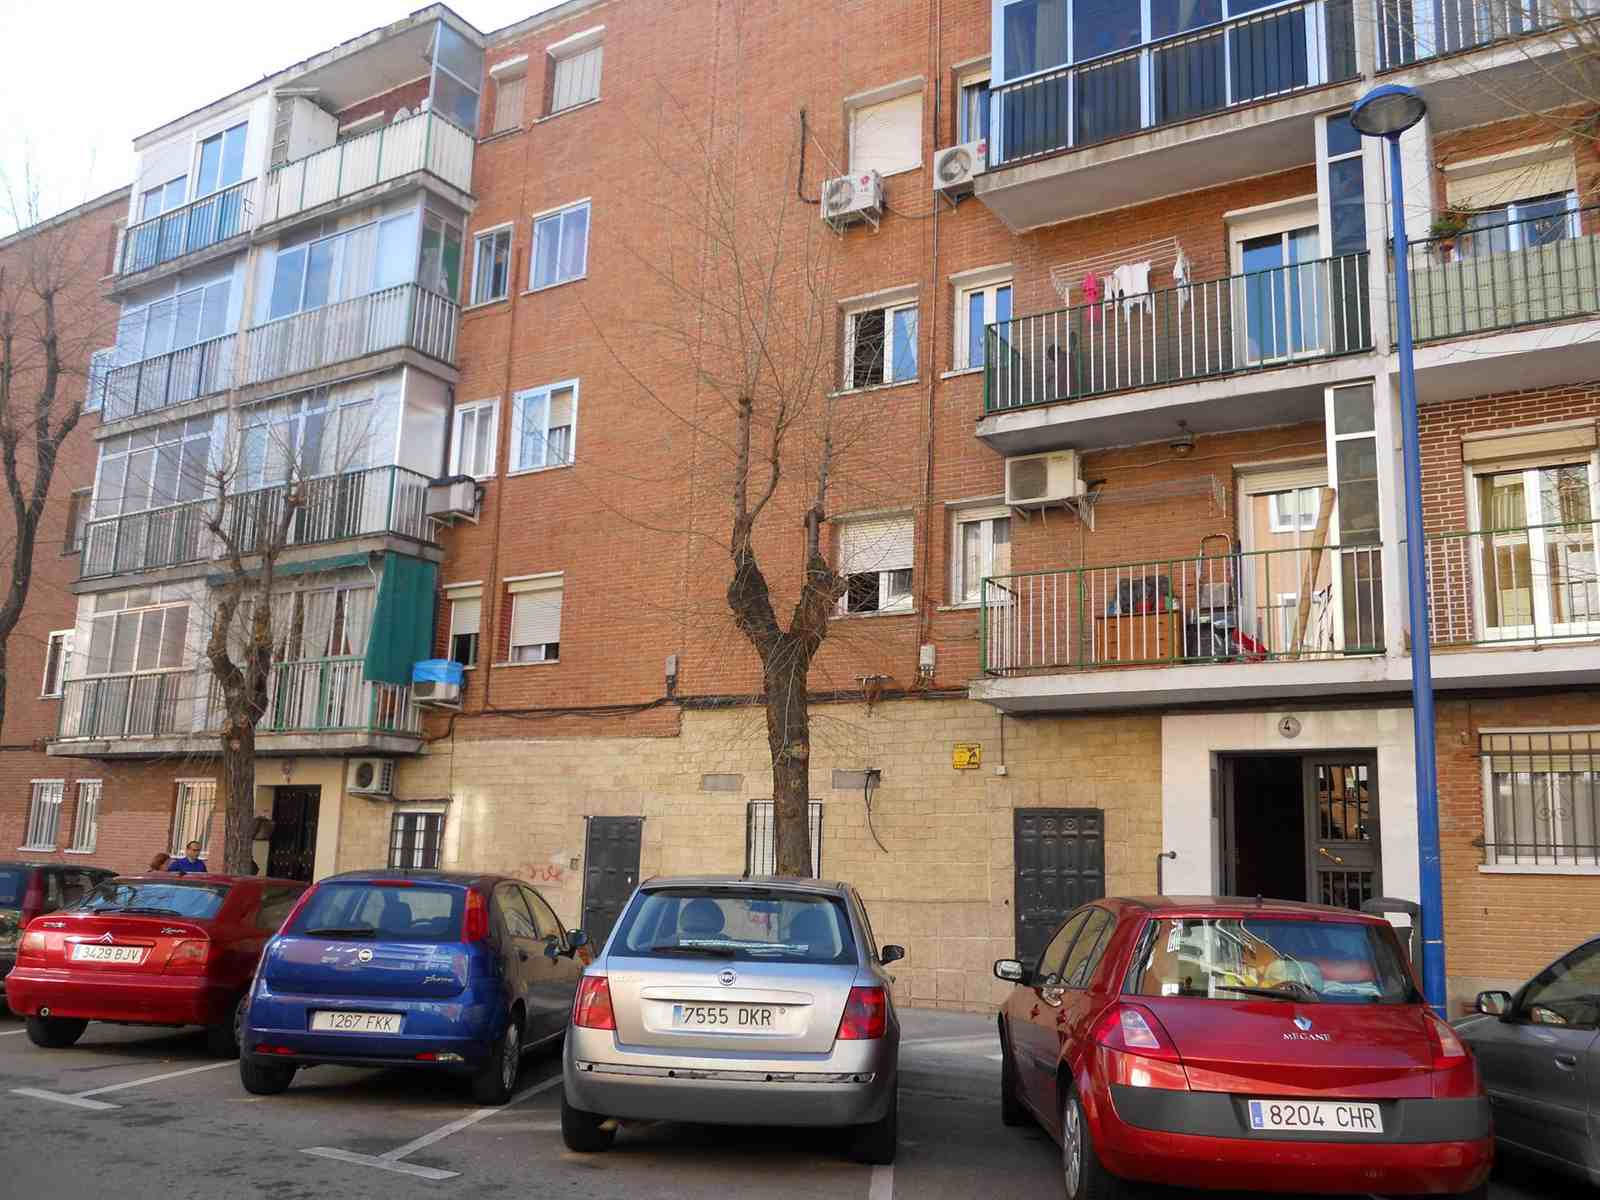 Local Comercial-Madrid-00218944